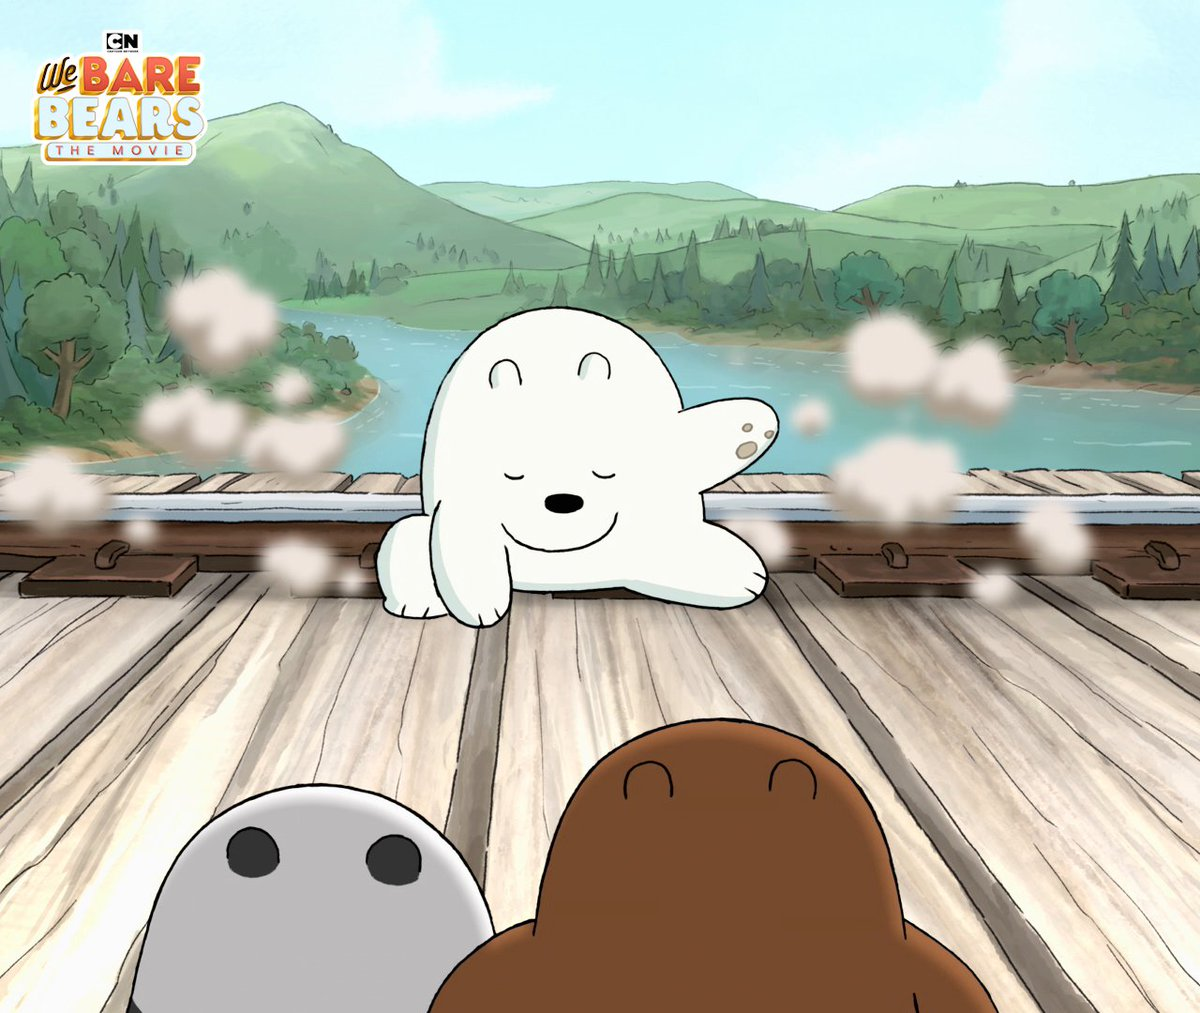 When the Bear Bros meet for the very first time! 🐻🐼❄️ Watch how they became a family in the #WeBareBearsMovie June 8 on Apple, Google Play, Amazon! (USA and CA only)  #WeBareBears #CartoonNetwork